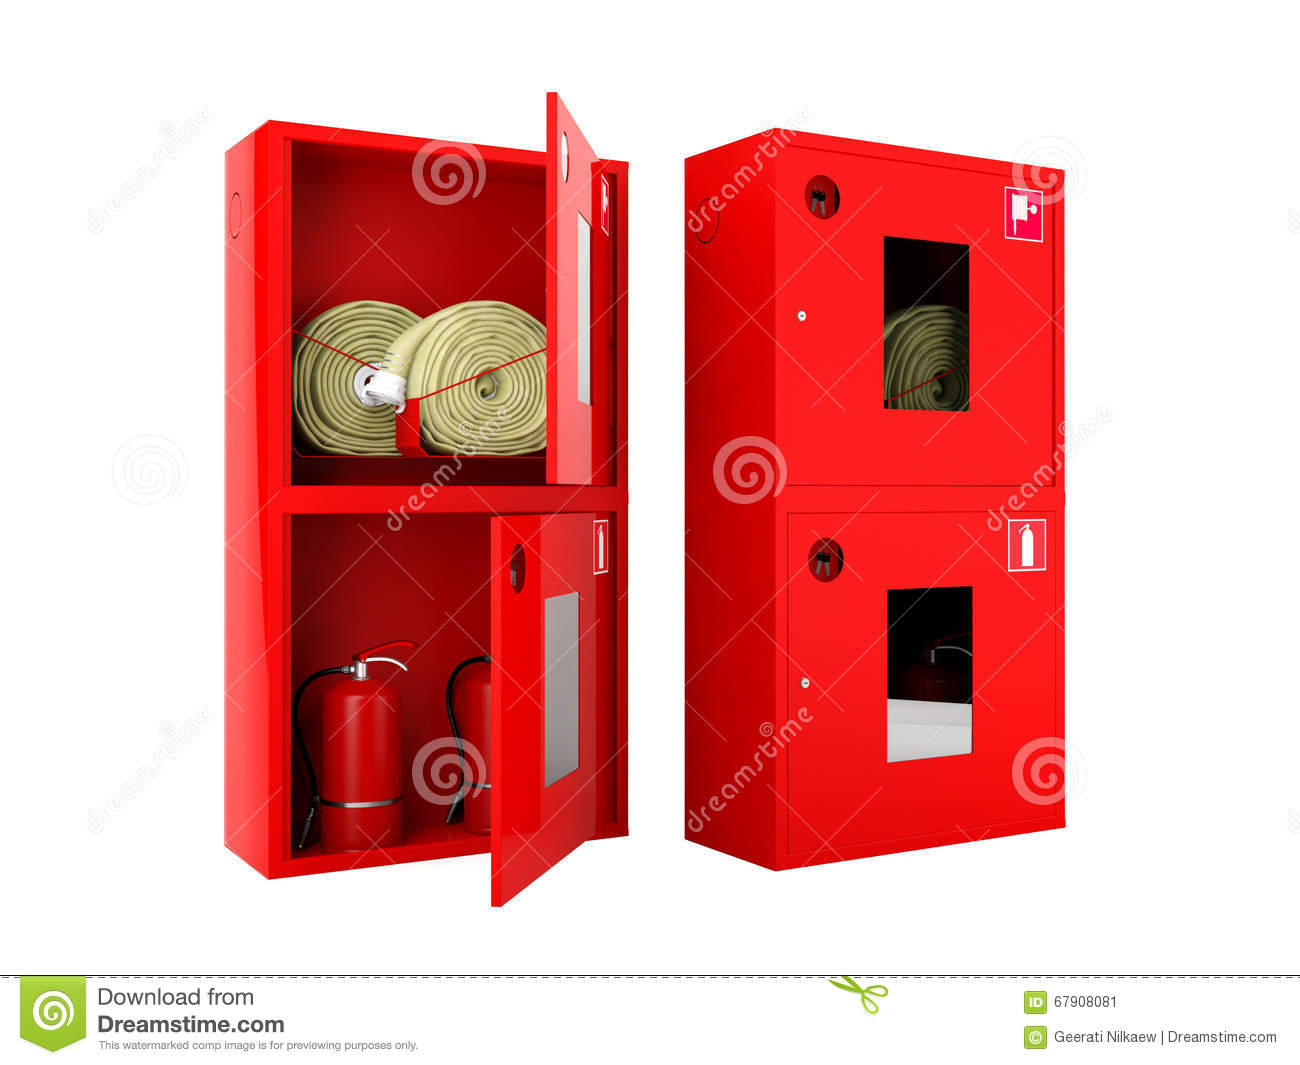 American Fire Hose And Cabinet Fire Hose Symbol Stock Photos Images Pictures 454 Images